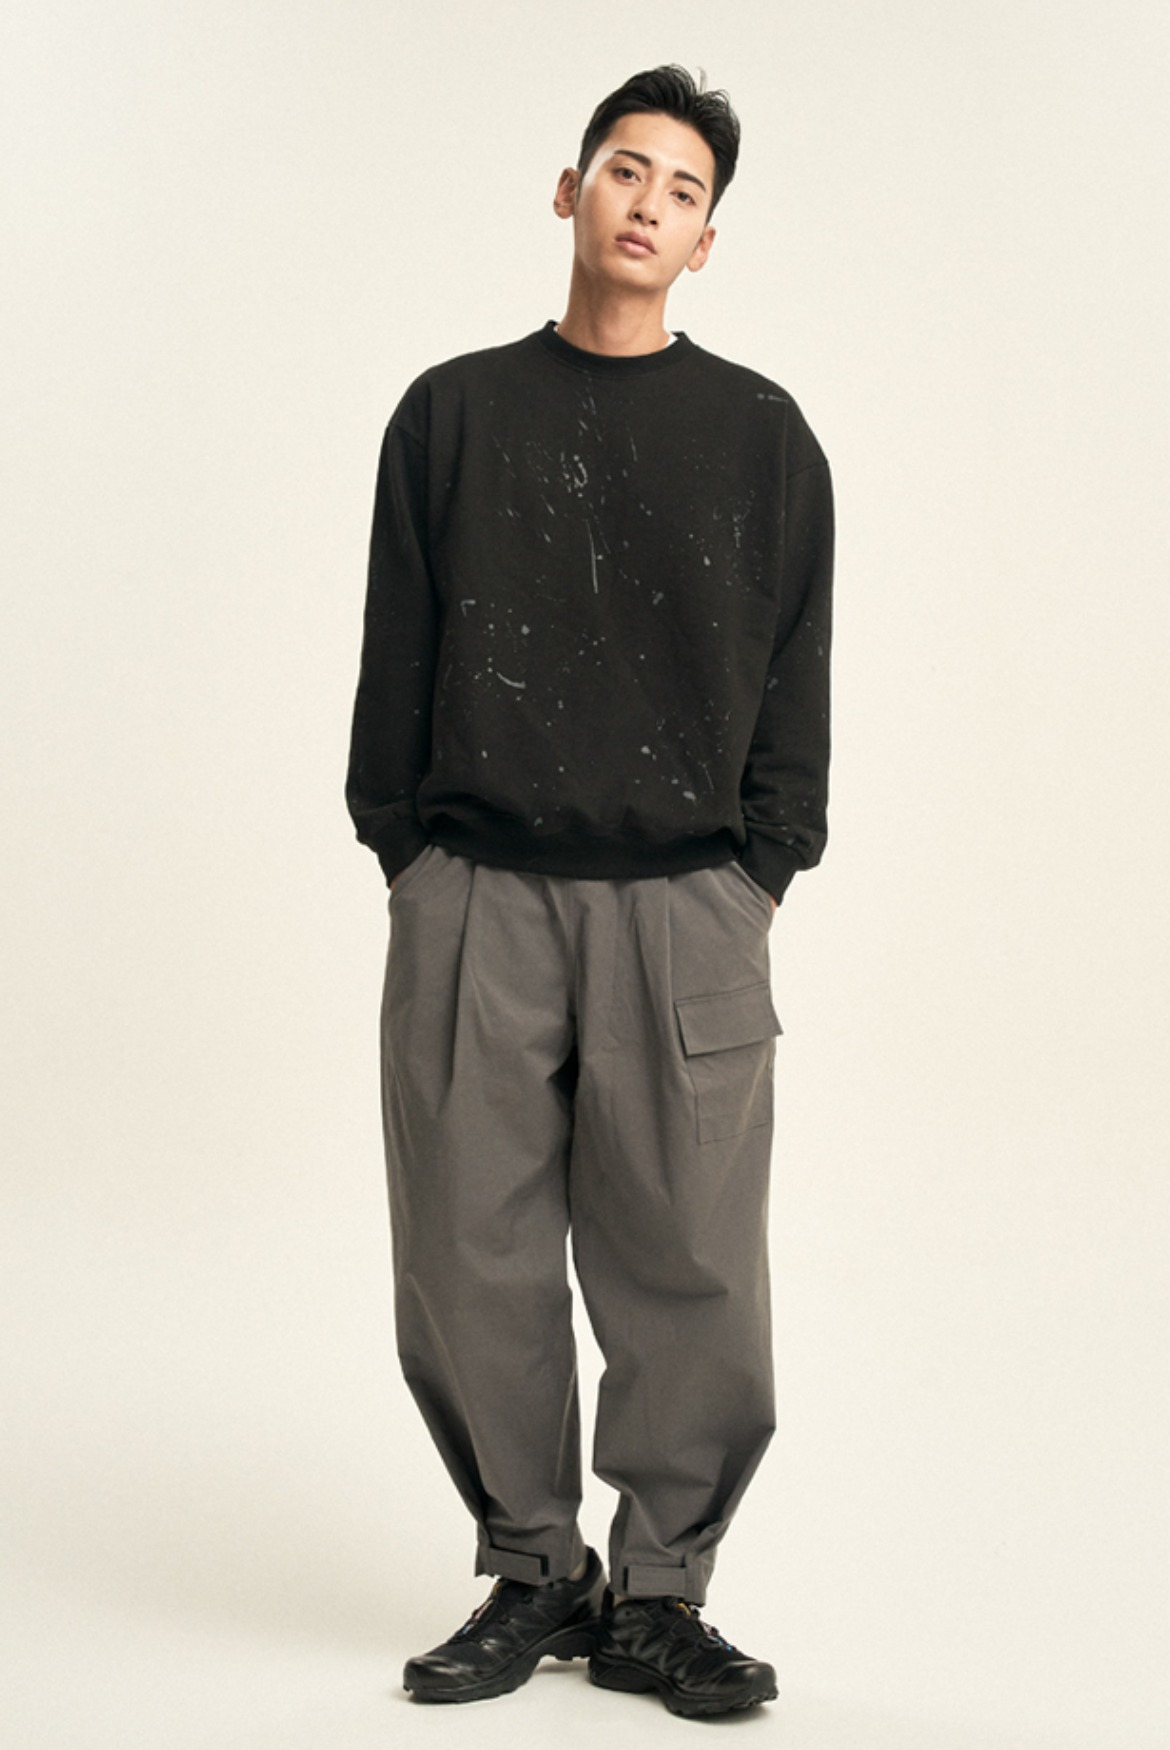 Velcro Wide Deep Tuck Pants [Charcoal]